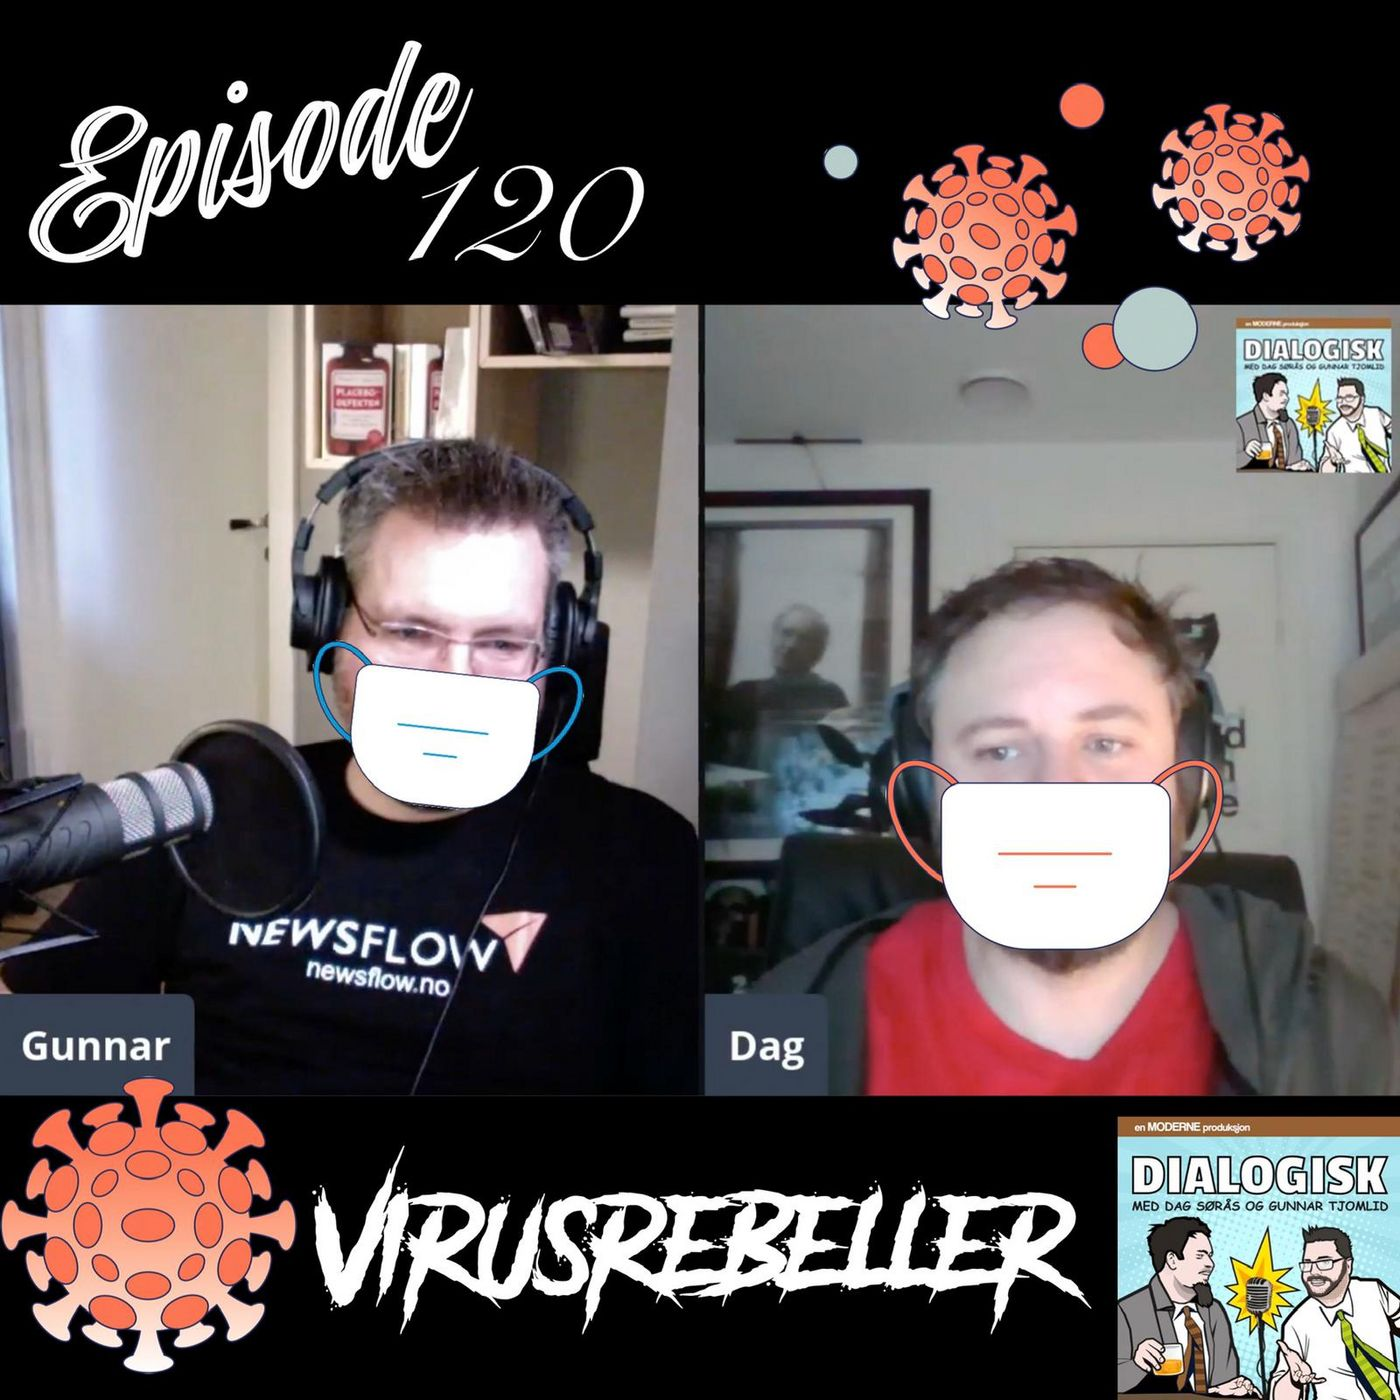 Episode 120: Virusrebeller